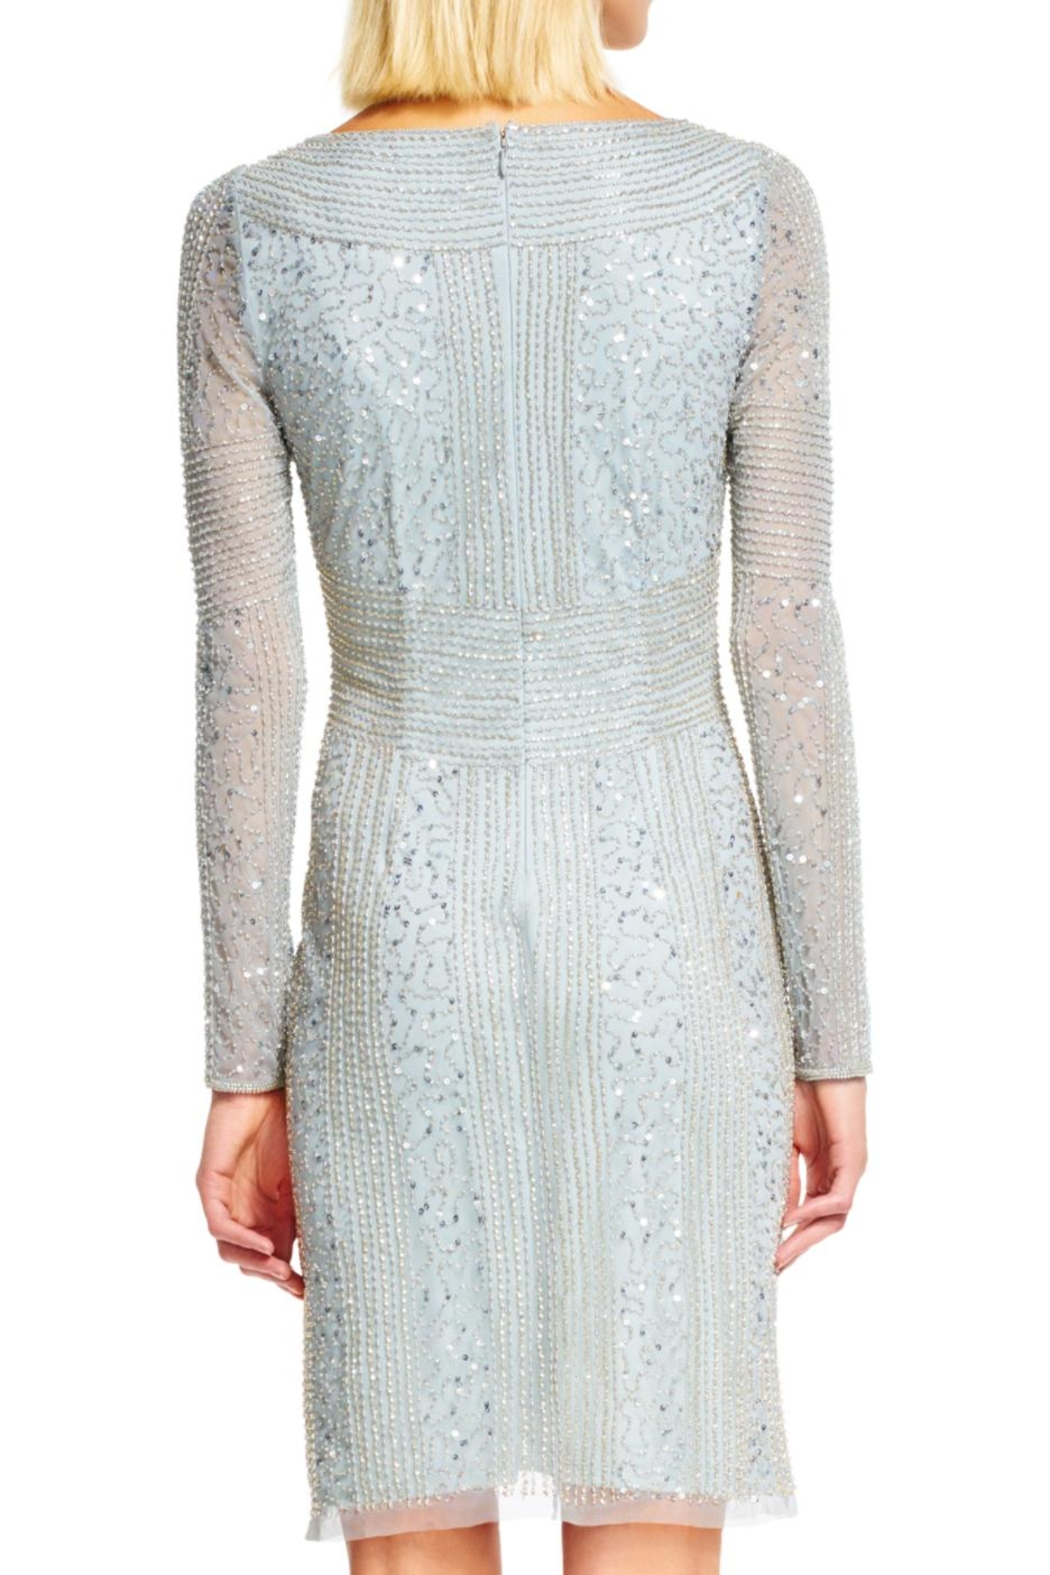 Adrianna Papell Beaded Sheath Dress - Front Full Image